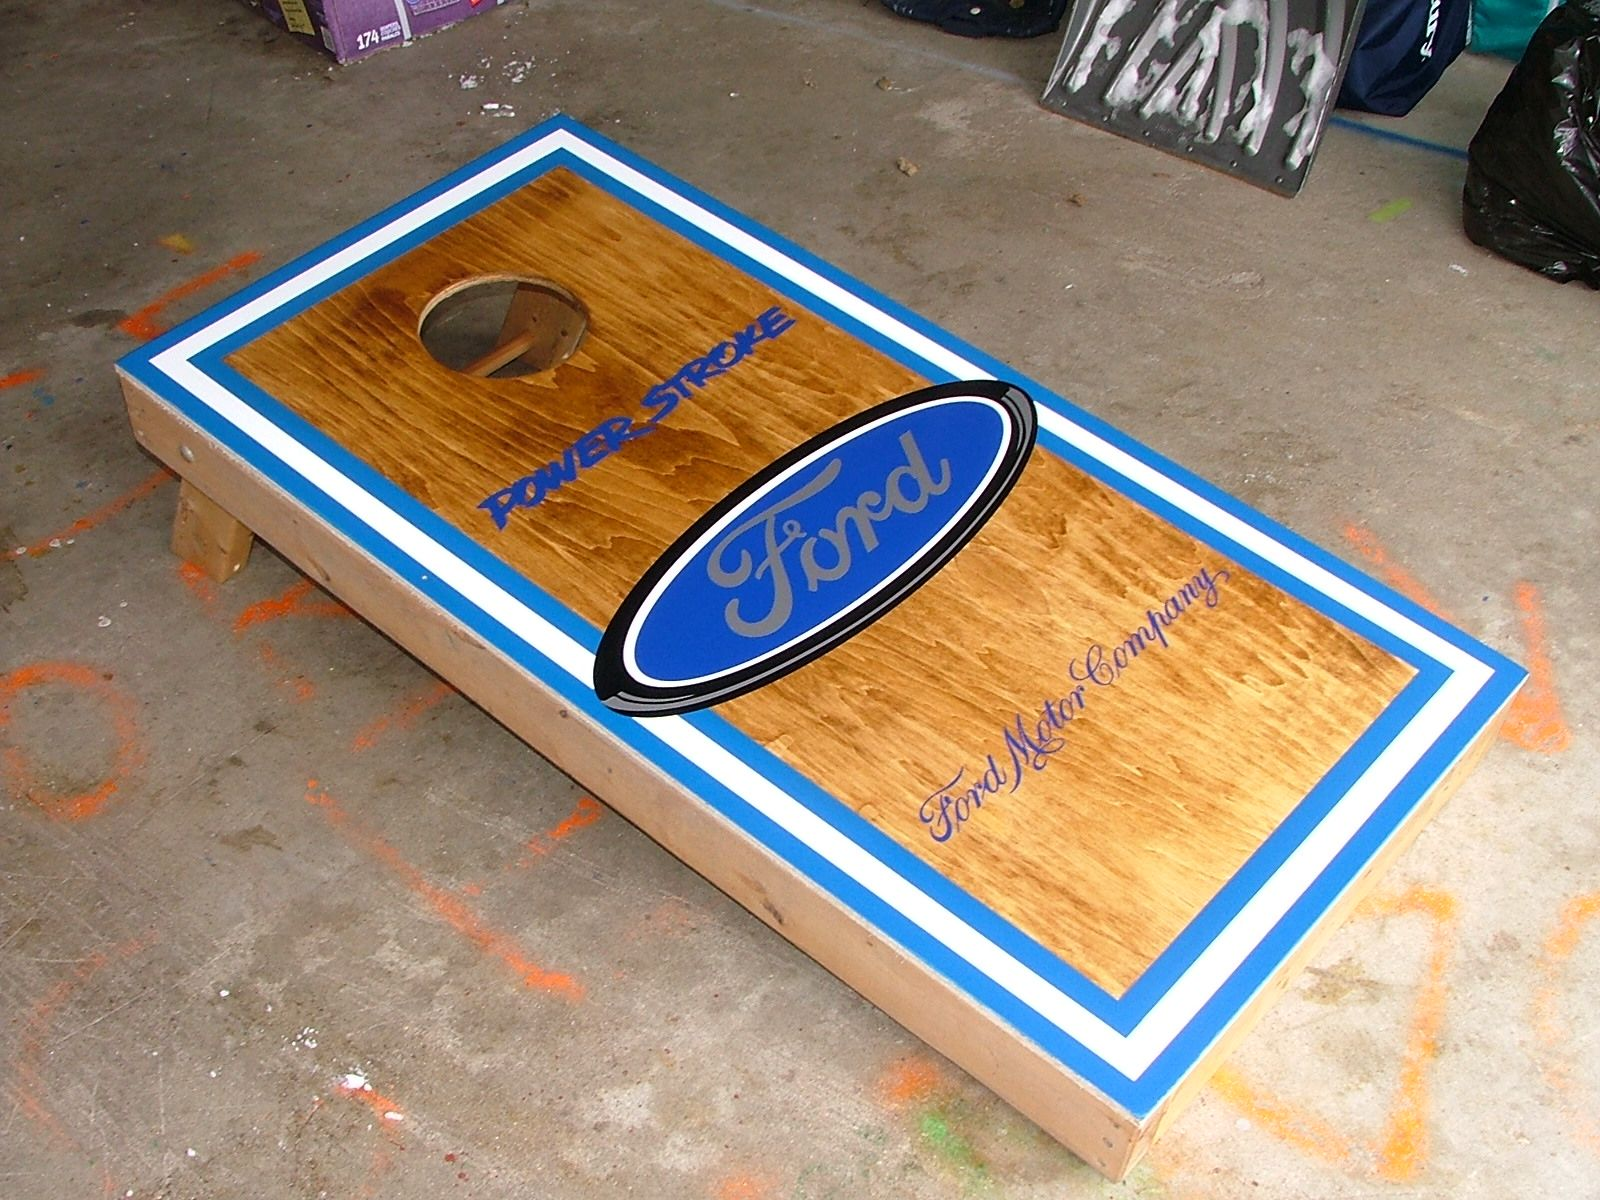 cornhole board hole designs cornhole design ideas - Cornhole Design Ideas